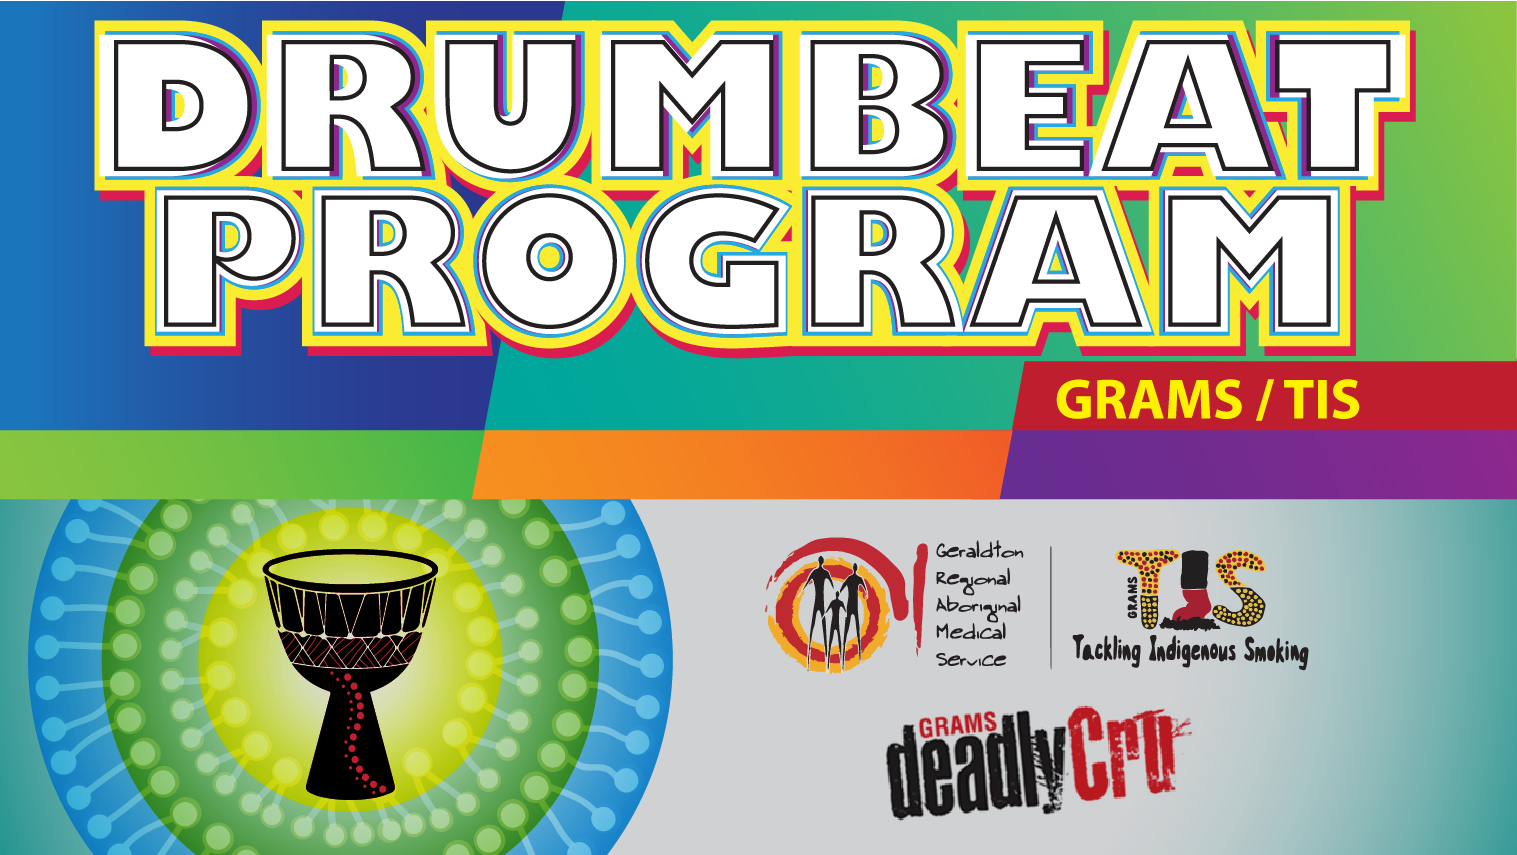 Drum Beat Program provides positive outlet for local youth